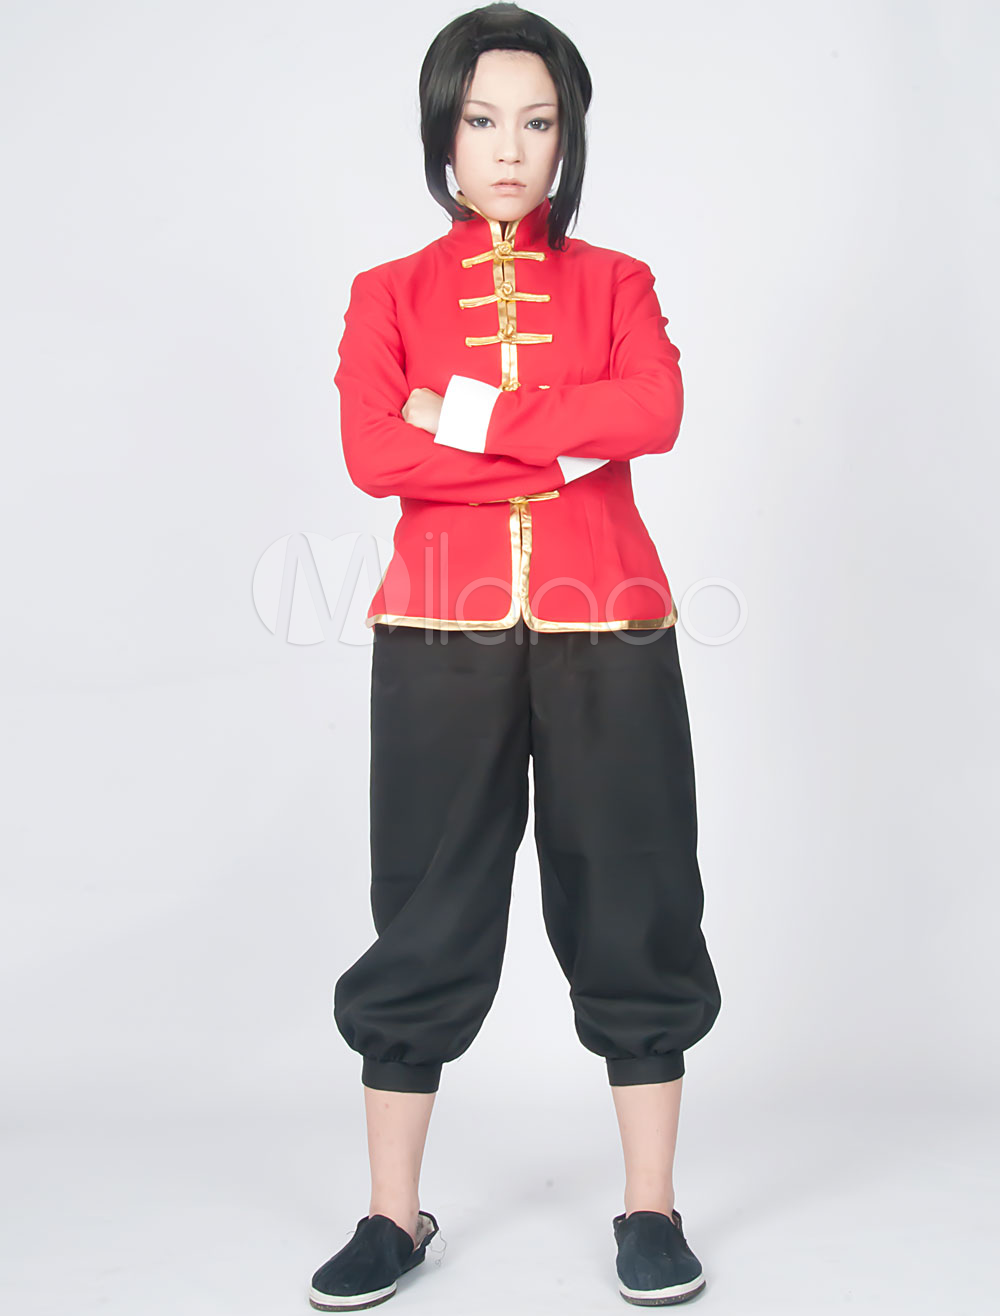 Ledballoons White Lit additionally Hetalia Axis Powers China Wang Yao Cosplay Costume moreover Nojp together with Chrr R likewise Fathers Day Color By Number Holiday Pages. on color by number for halloween